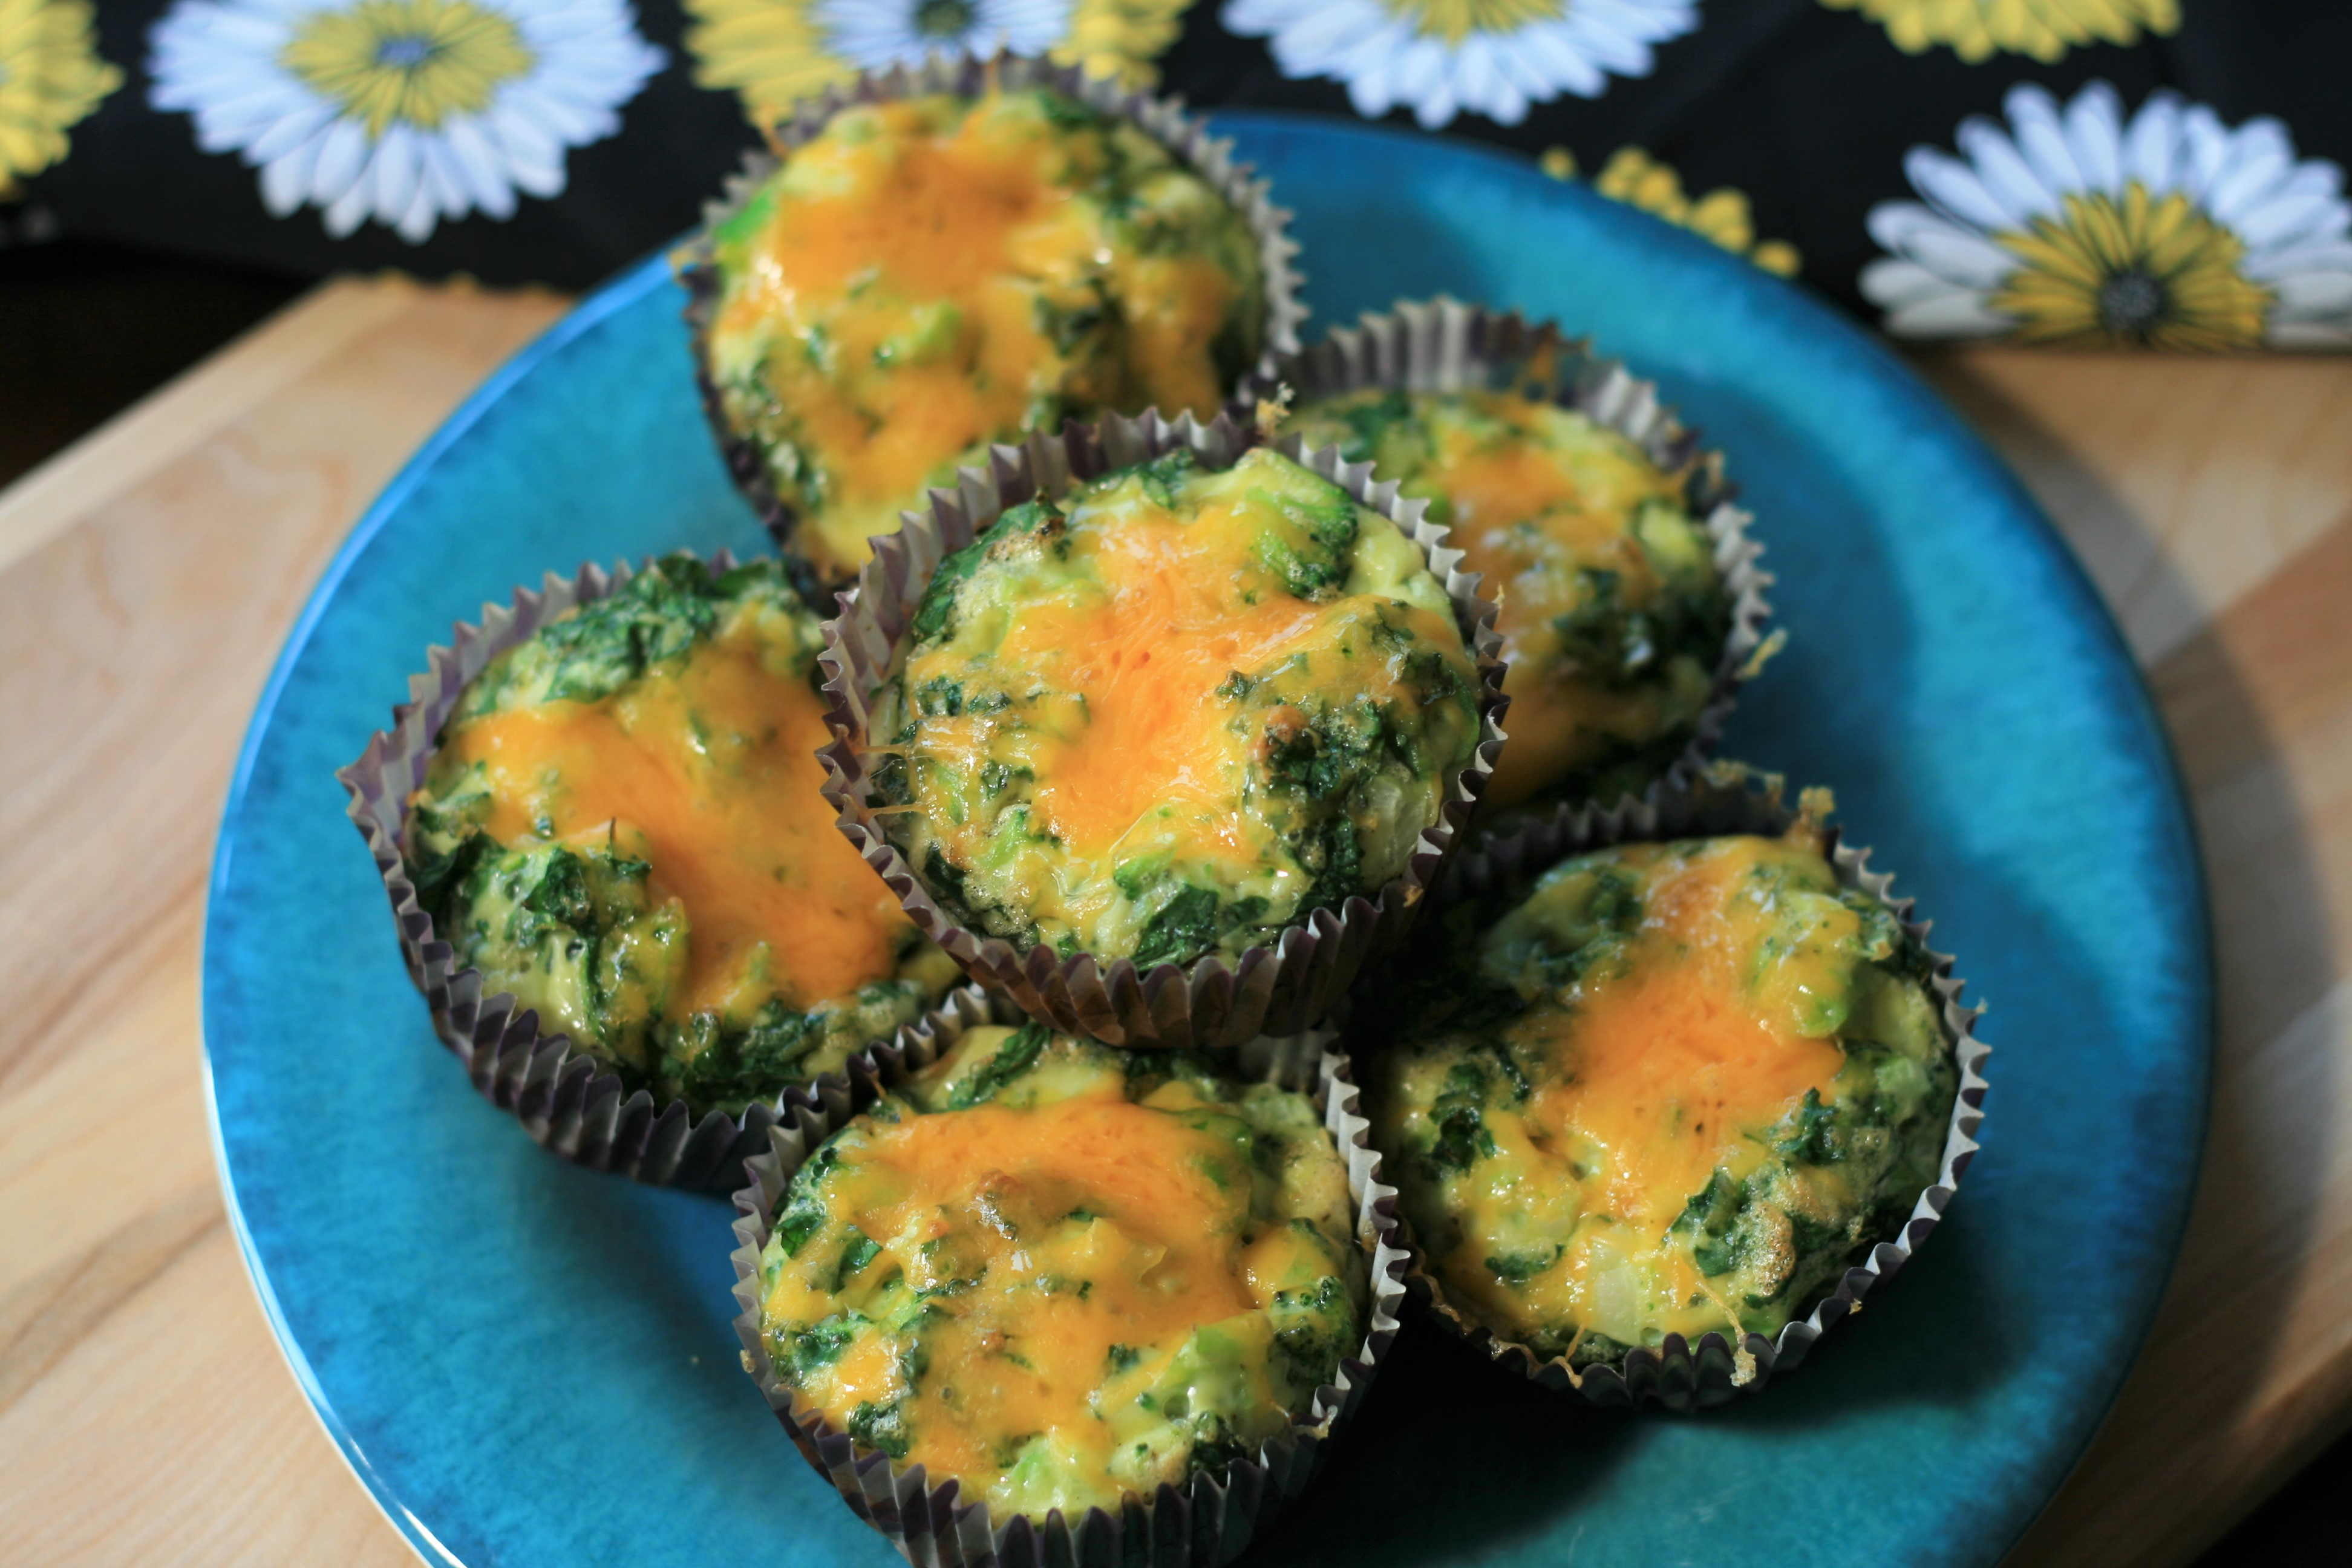 Omelet Muffins with Kale and Broccoli Carol Ann